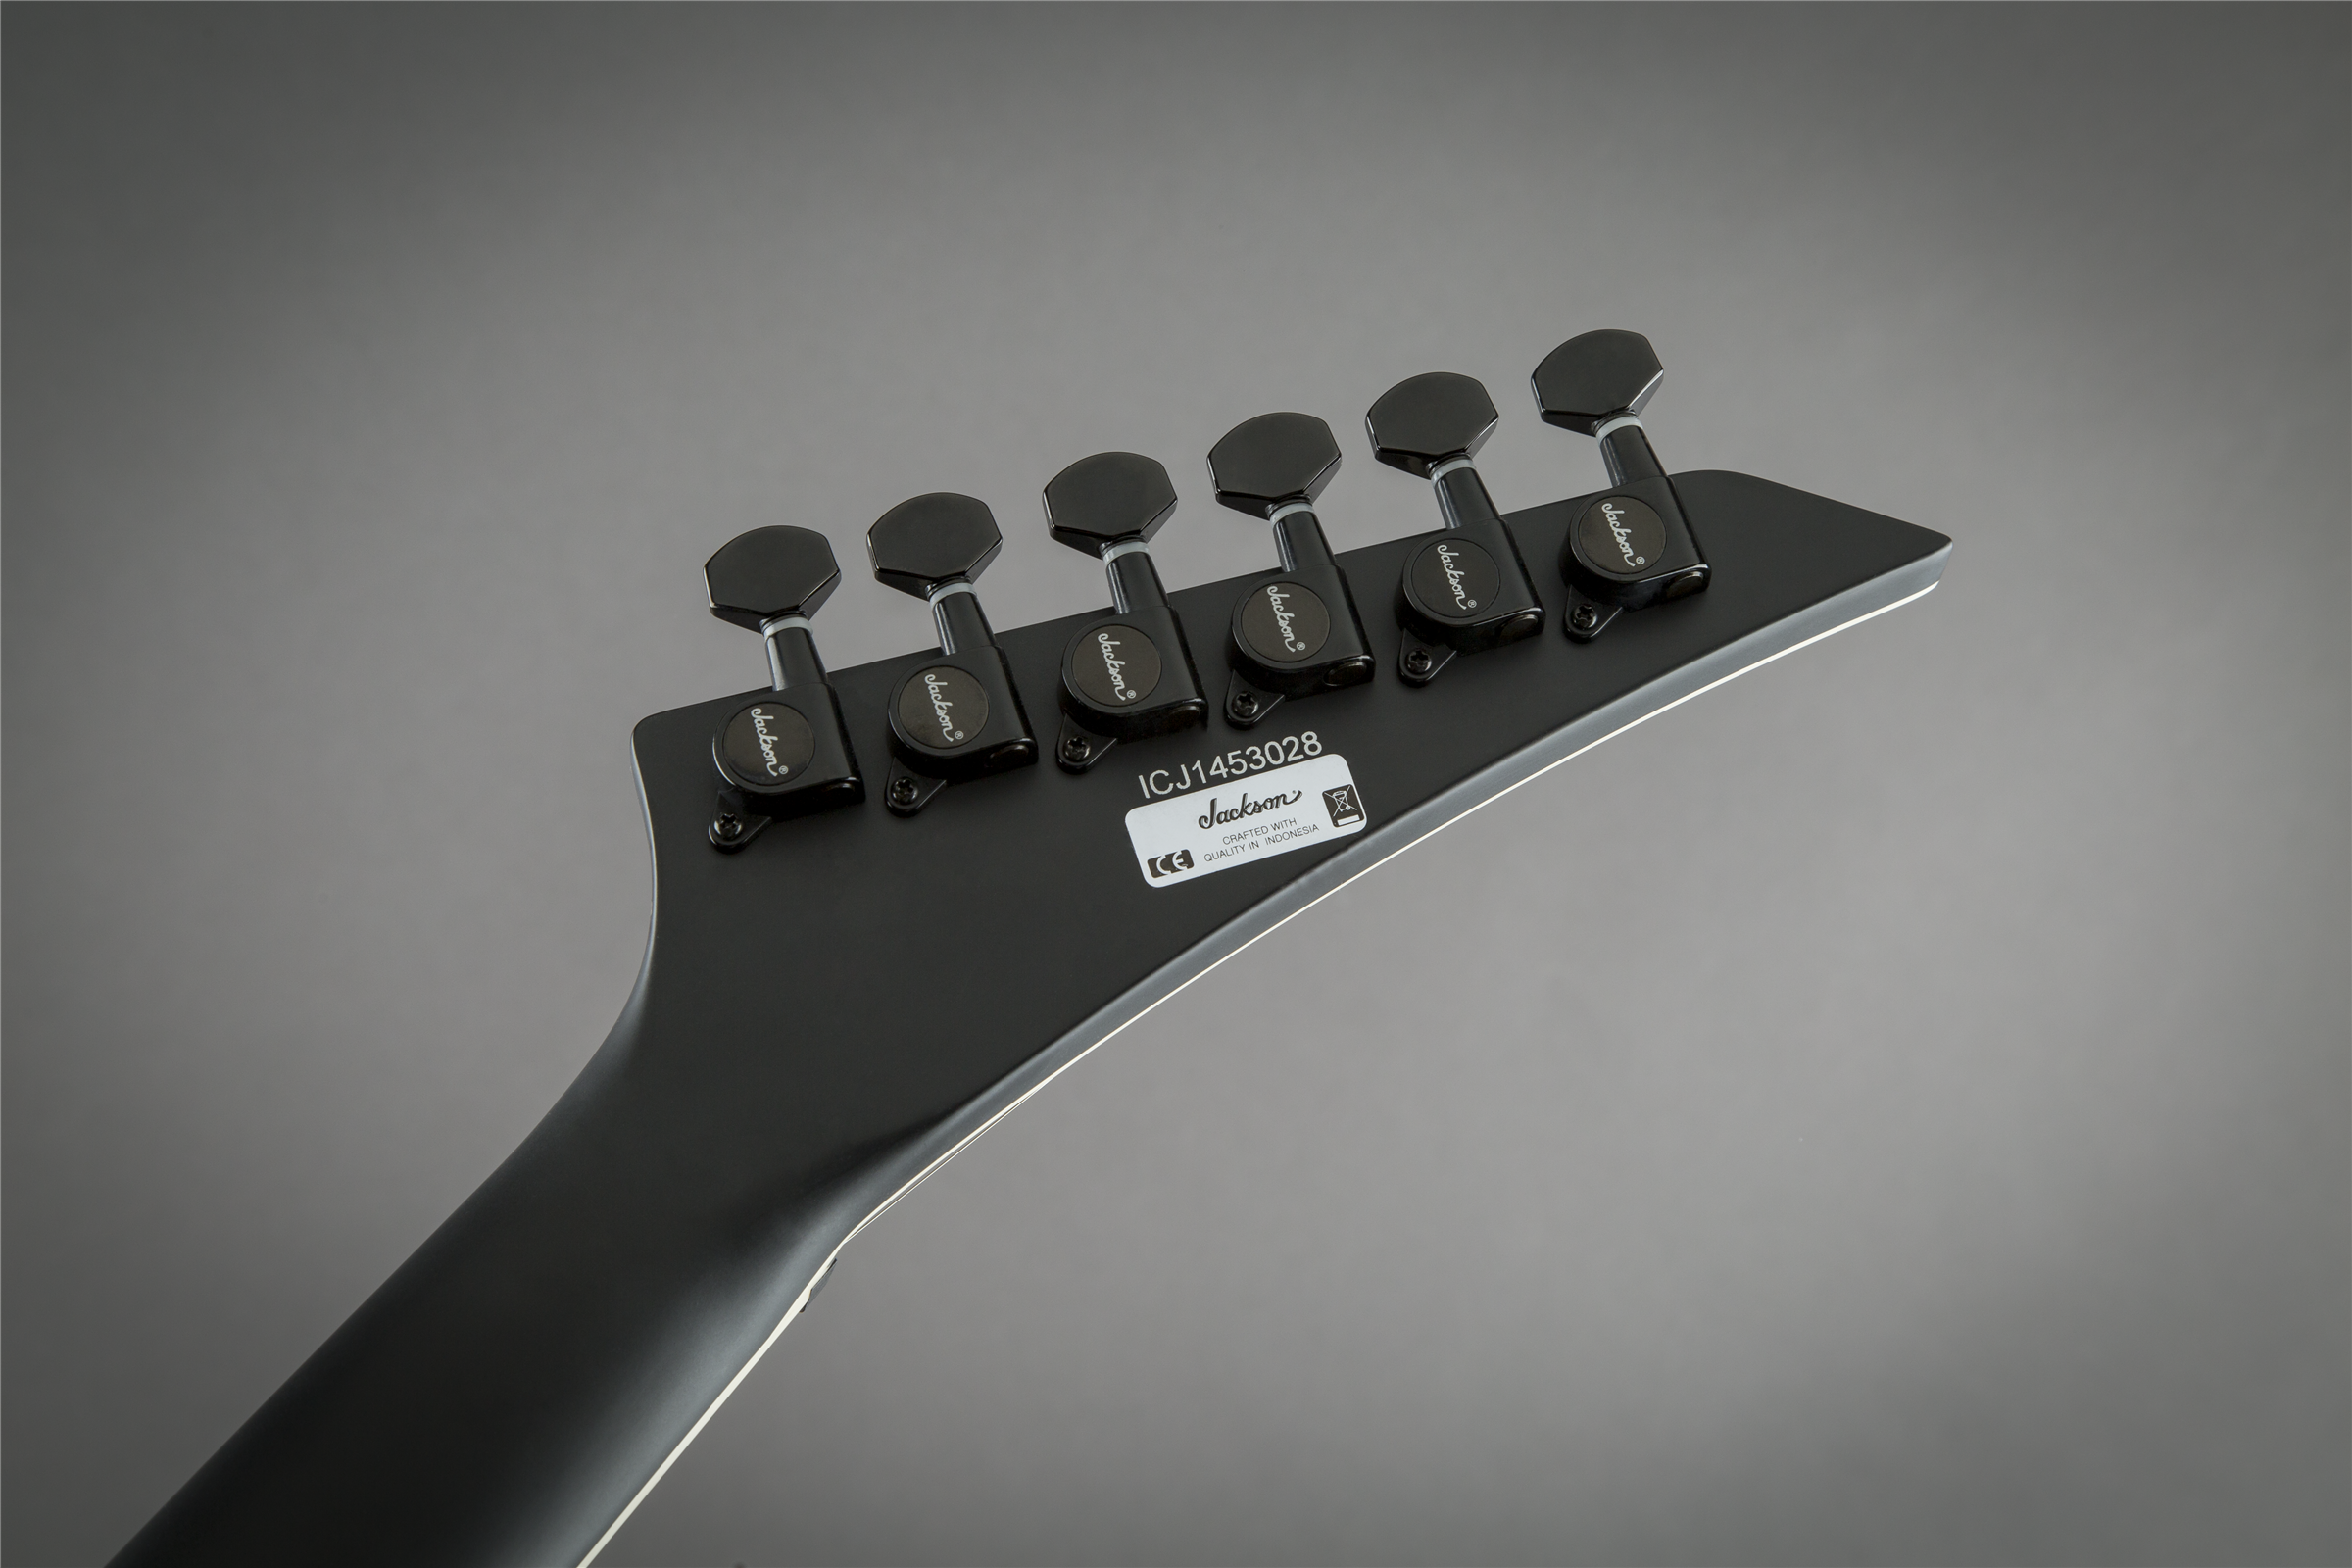 Jackson Rhoads V Wiring Diagram For Manual Violin Bass Guitar X Series Rrxt Lh Rosewood Fingerboard Satin Black Case